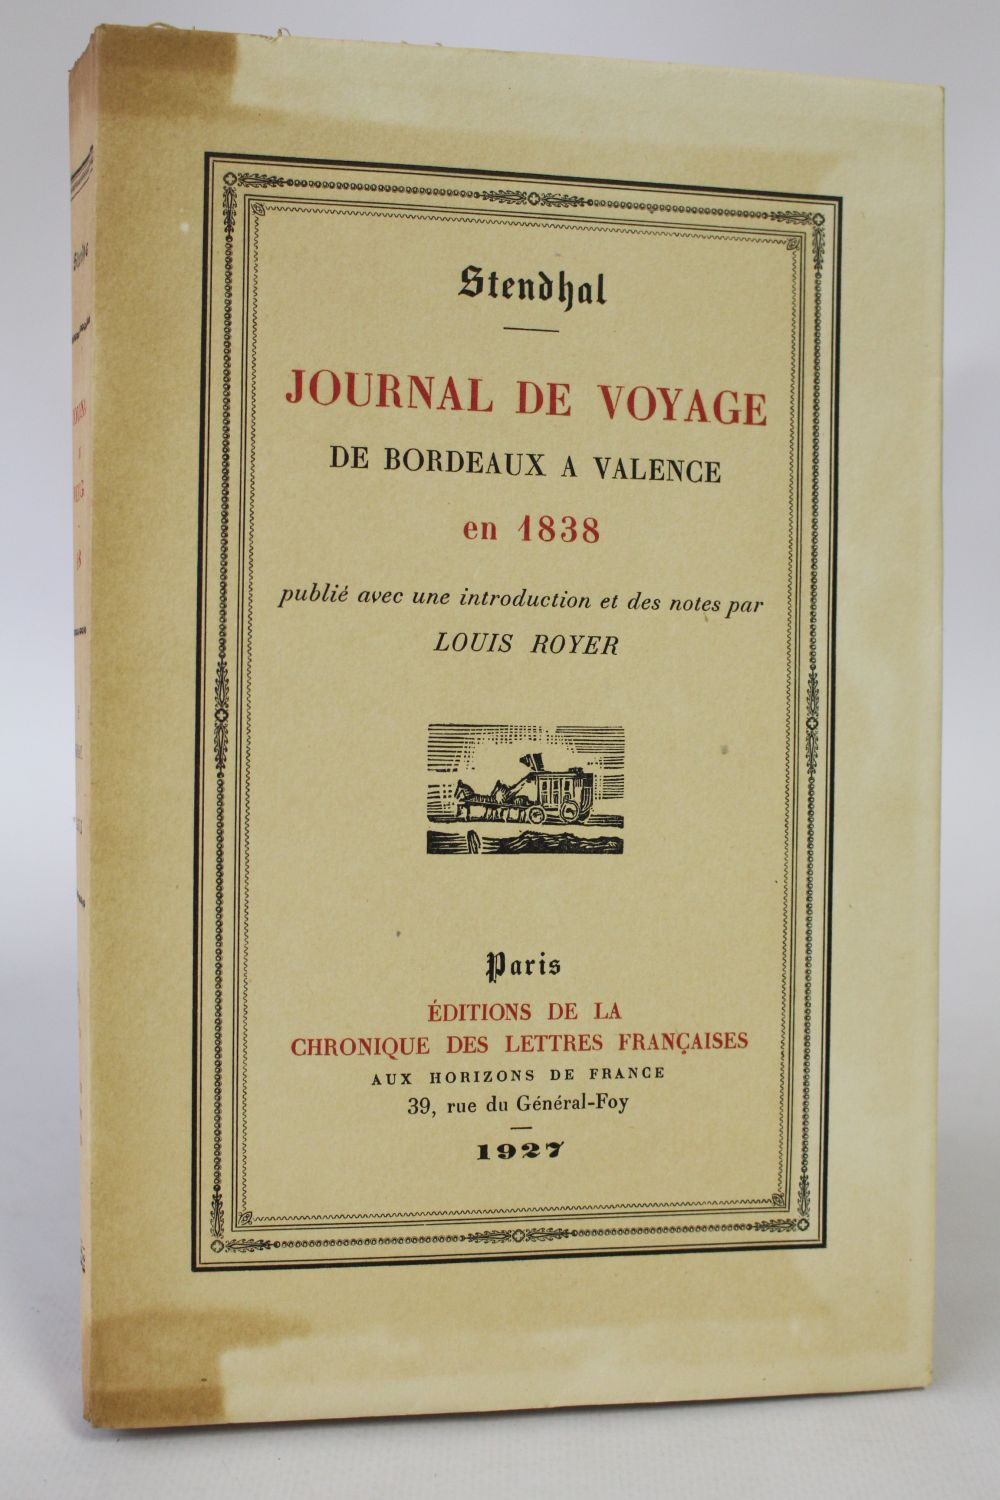 stendhal journal de voyage de bordeaux valence en 1838 first edition edition. Black Bedroom Furniture Sets. Home Design Ideas